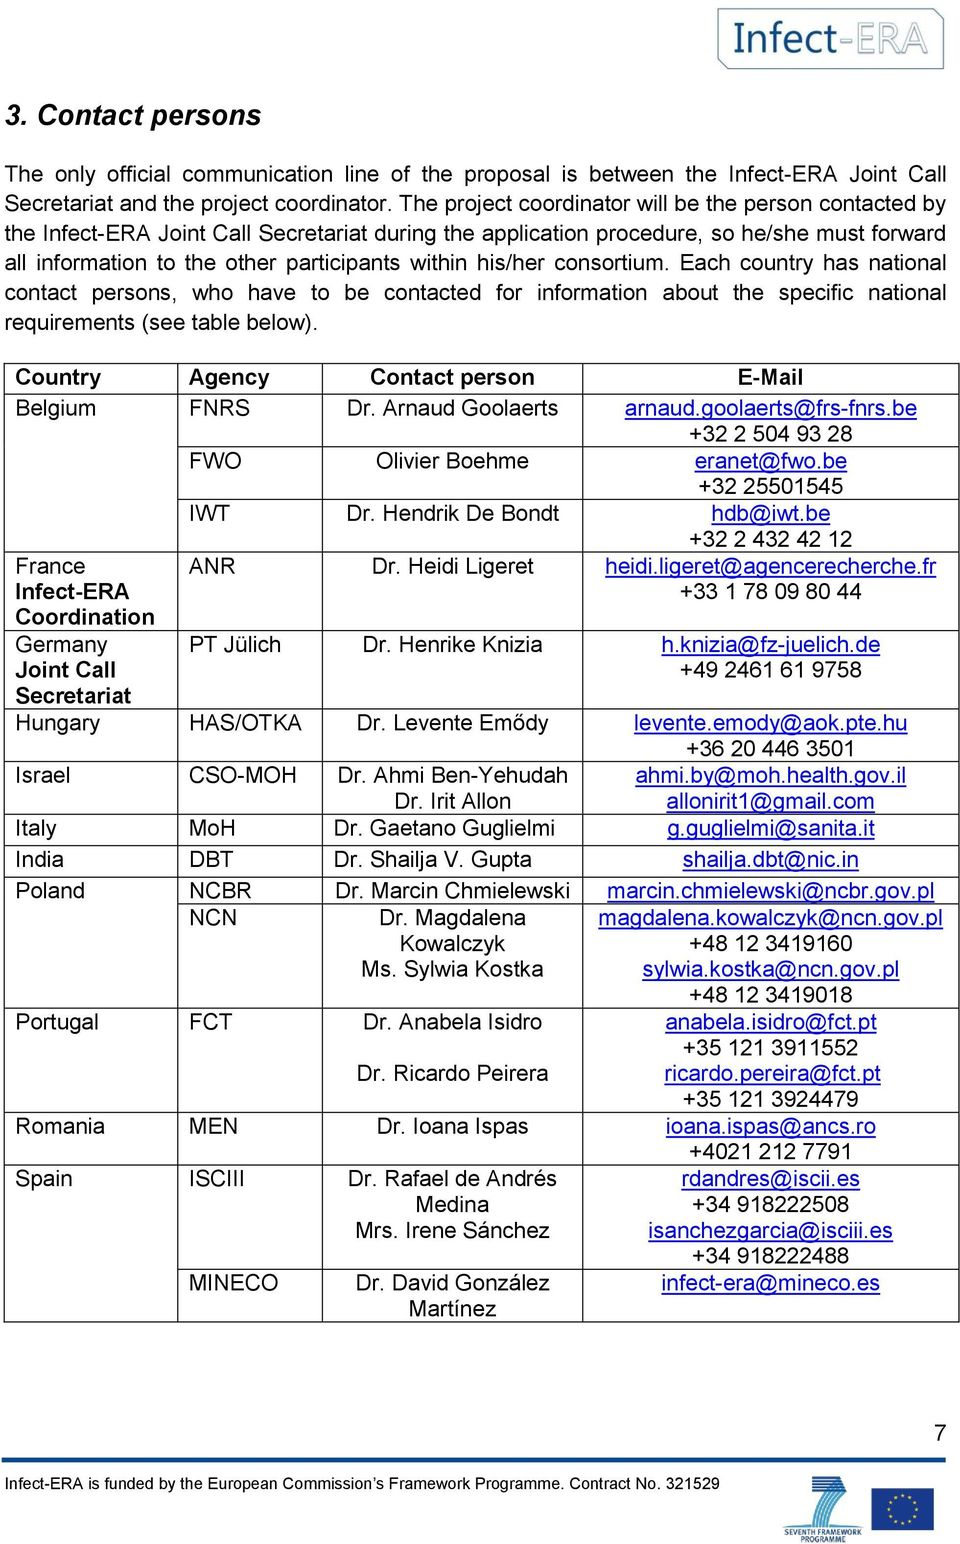 his/her consortium. Each country has national contact persons, who have to be contacted for information about the specific national requirements (see table below).